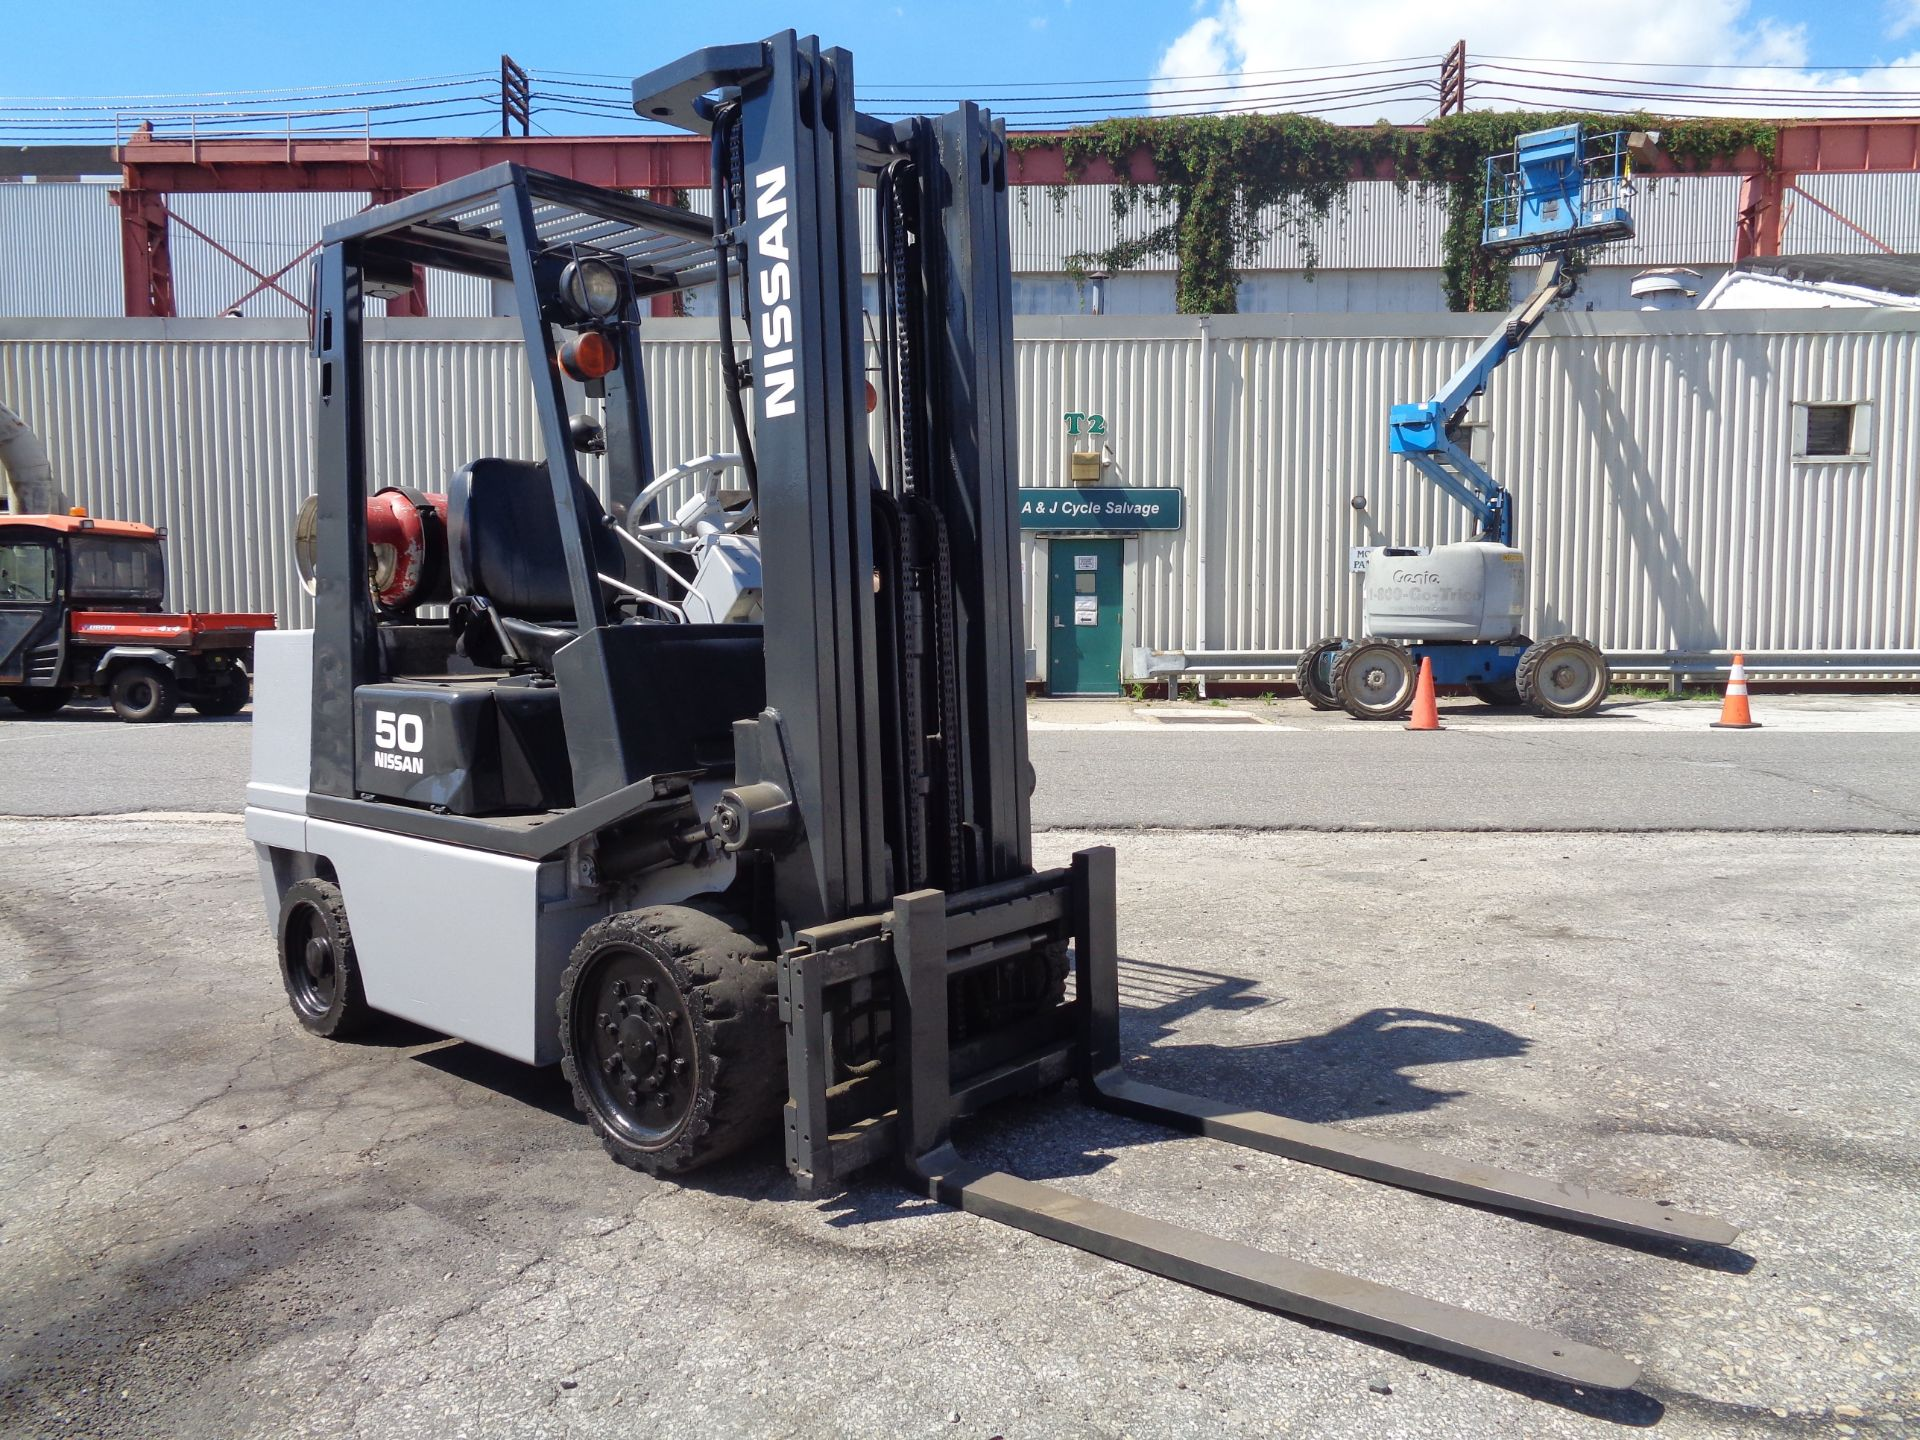 Nissan KCPH02A25PV 4,400 lb Forklift - Image 10 of 17